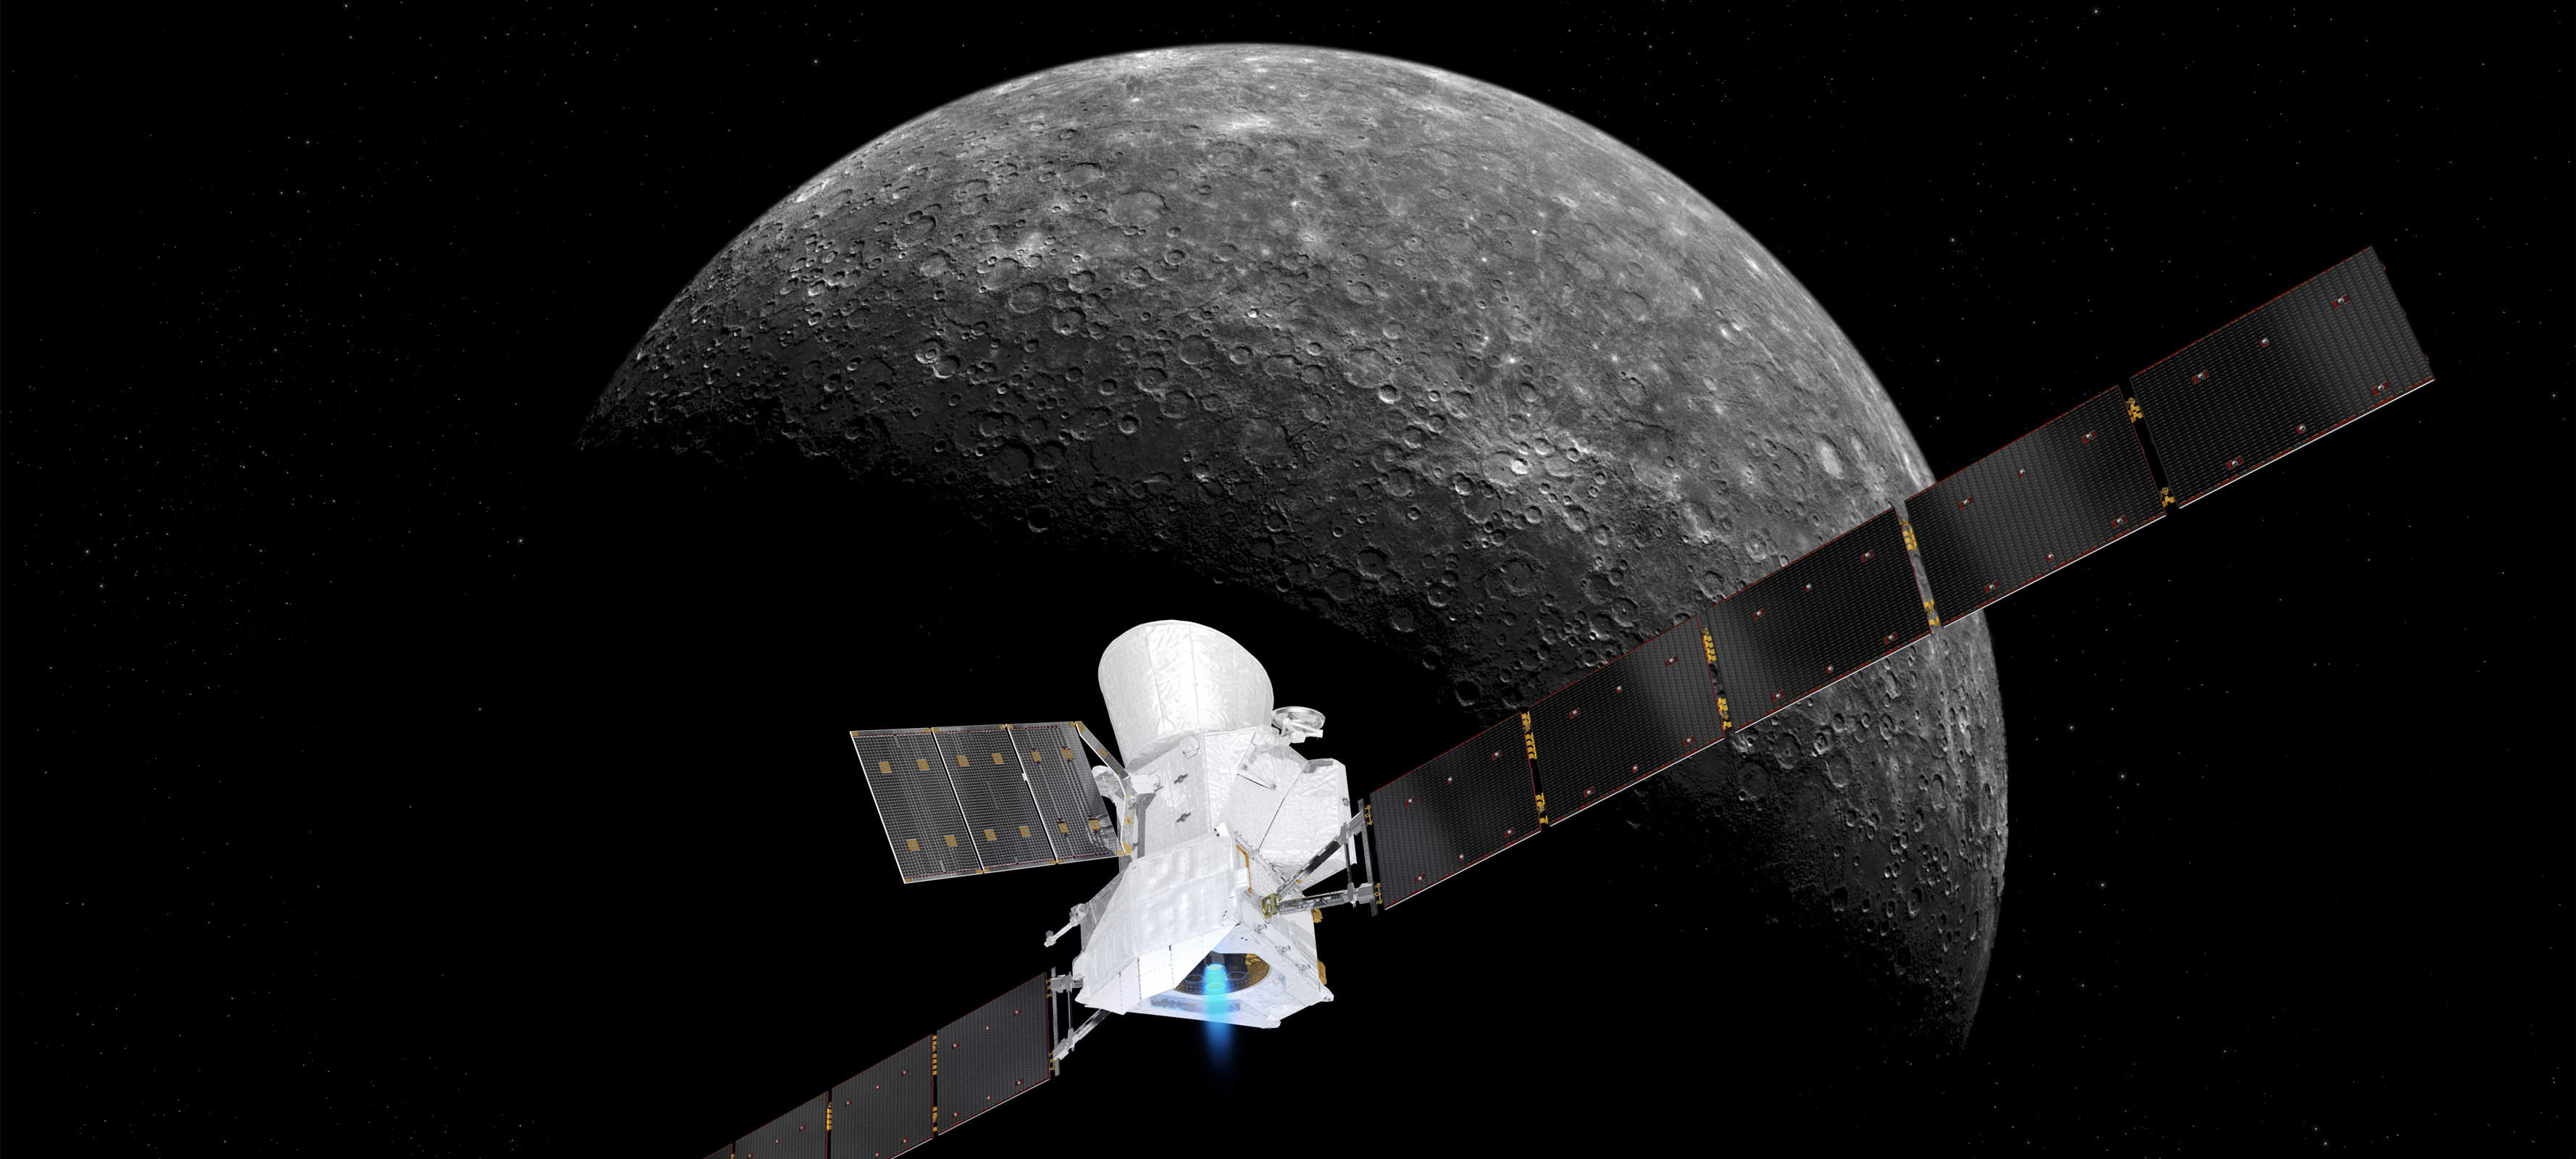 BepiColombo approaching Mercury. Credit: European Space Agency